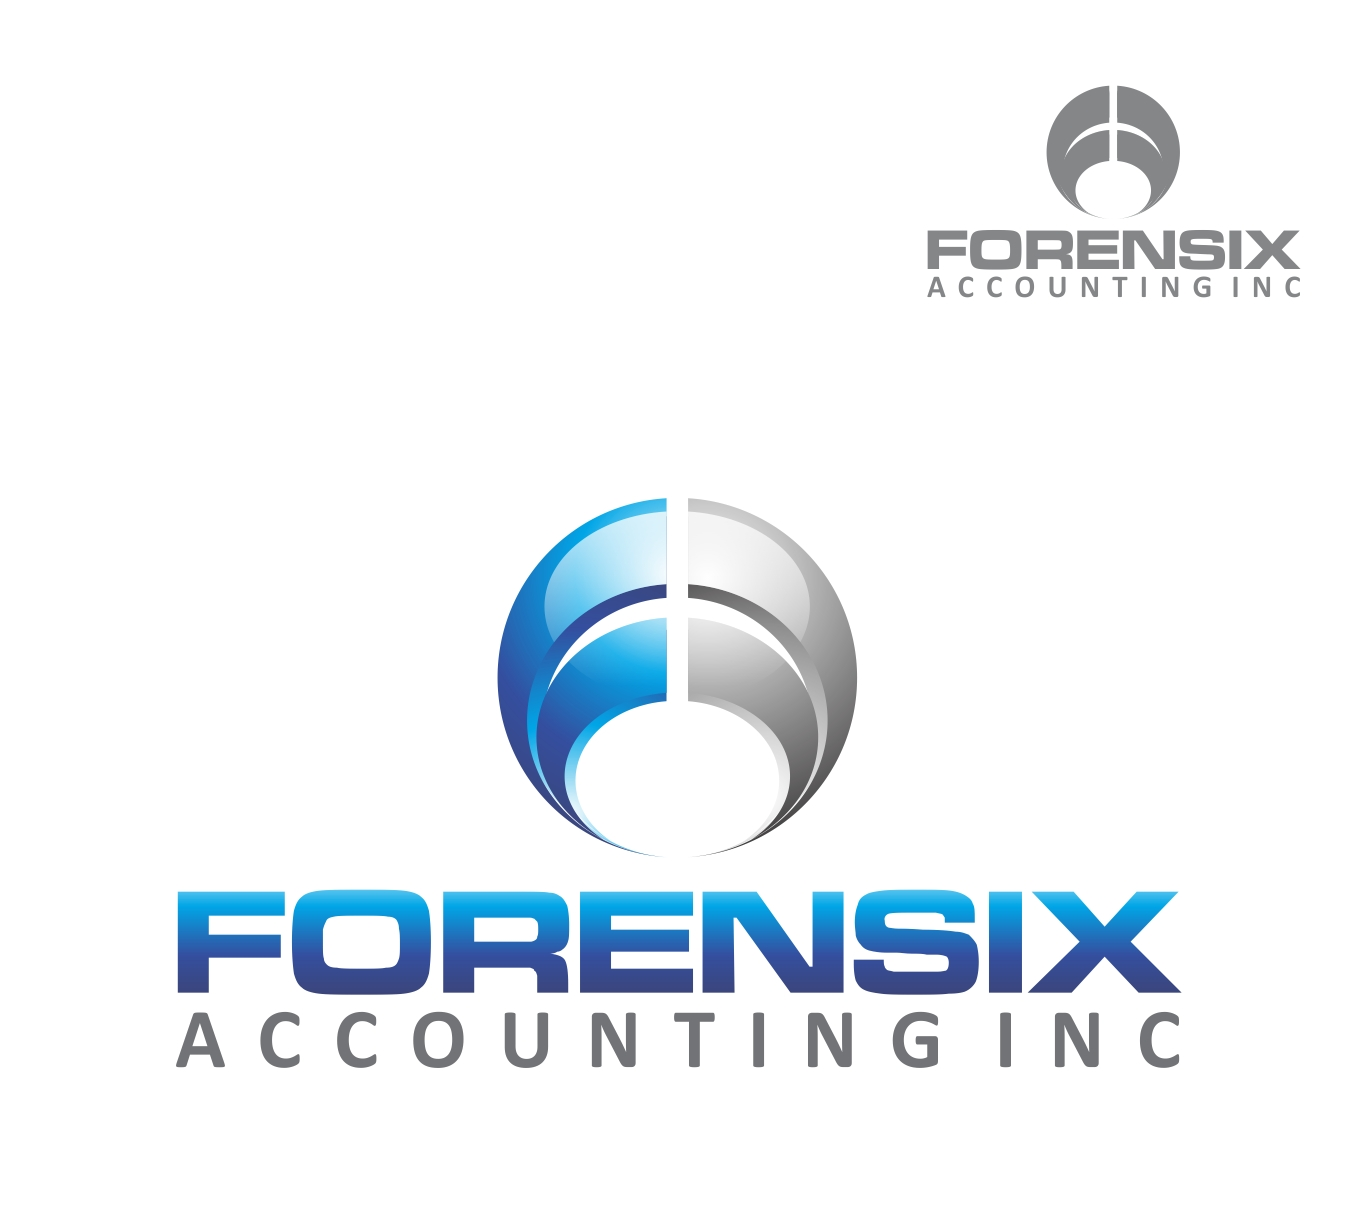 Logo Design by Reivan Ferdinan - Entry No. 24 in the Logo Design Contest FORENSIX ACCOUNTING INC. Logo Design.